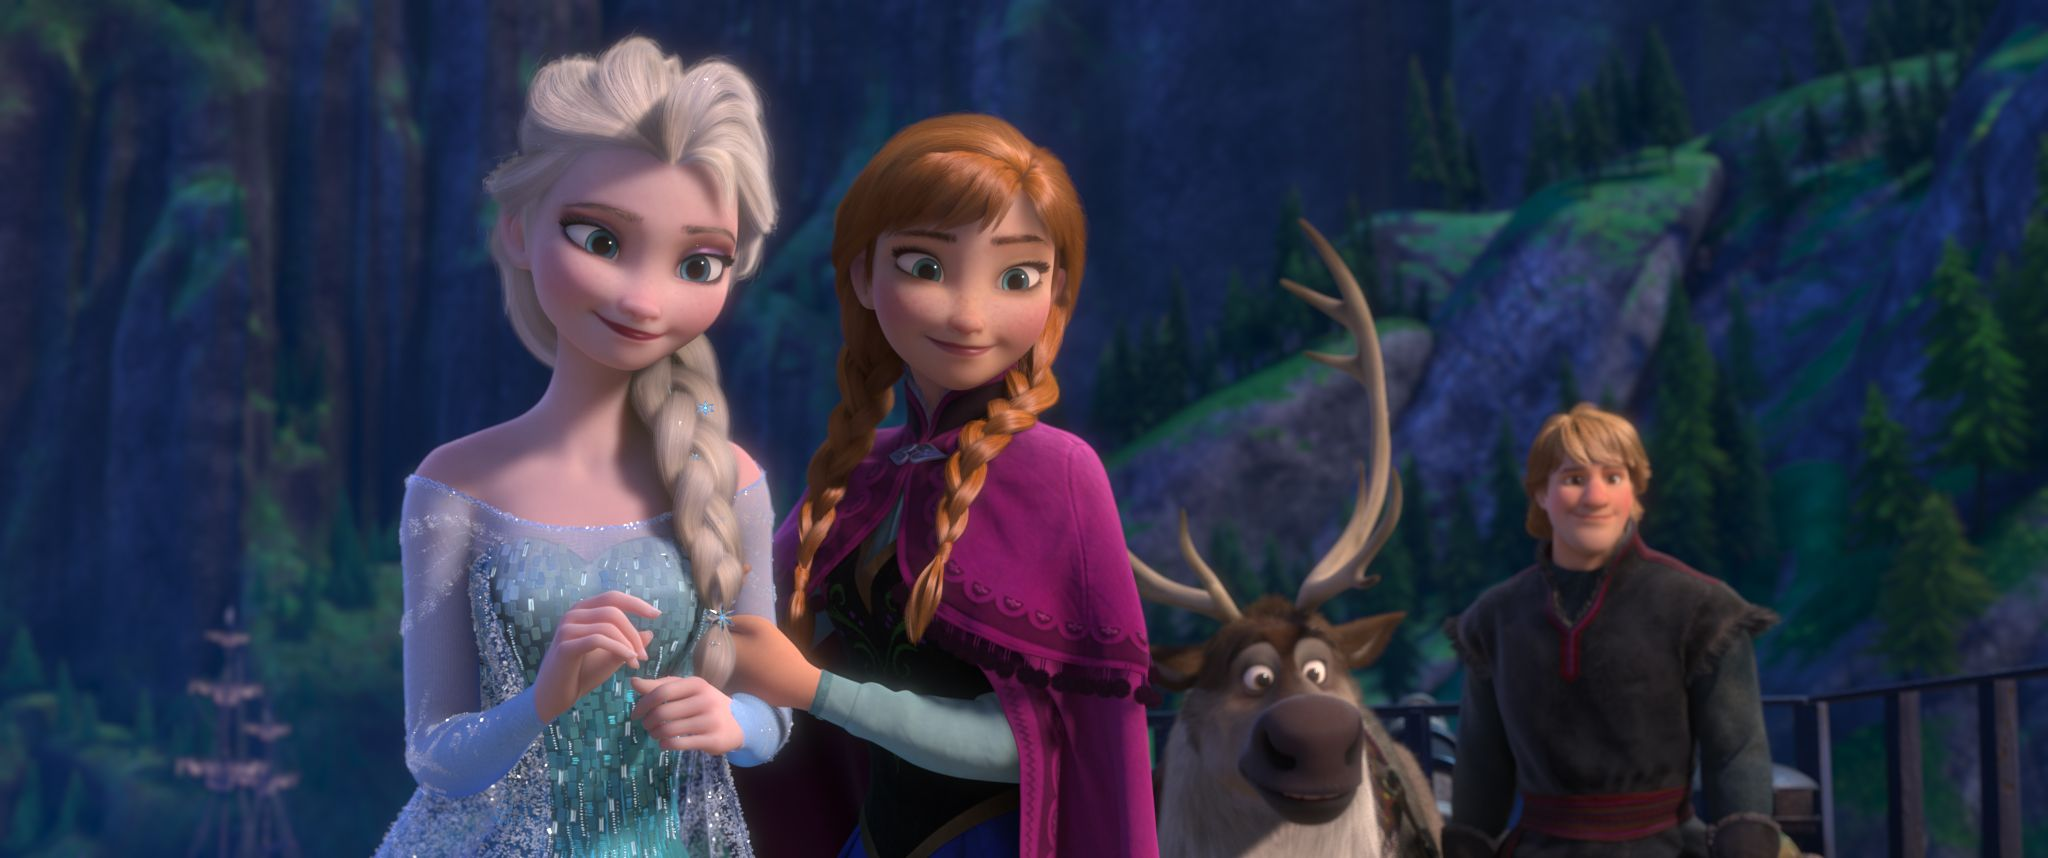 How the Frozen 2 trailer hints at a long-awaited LGBTQ+ breakthrough